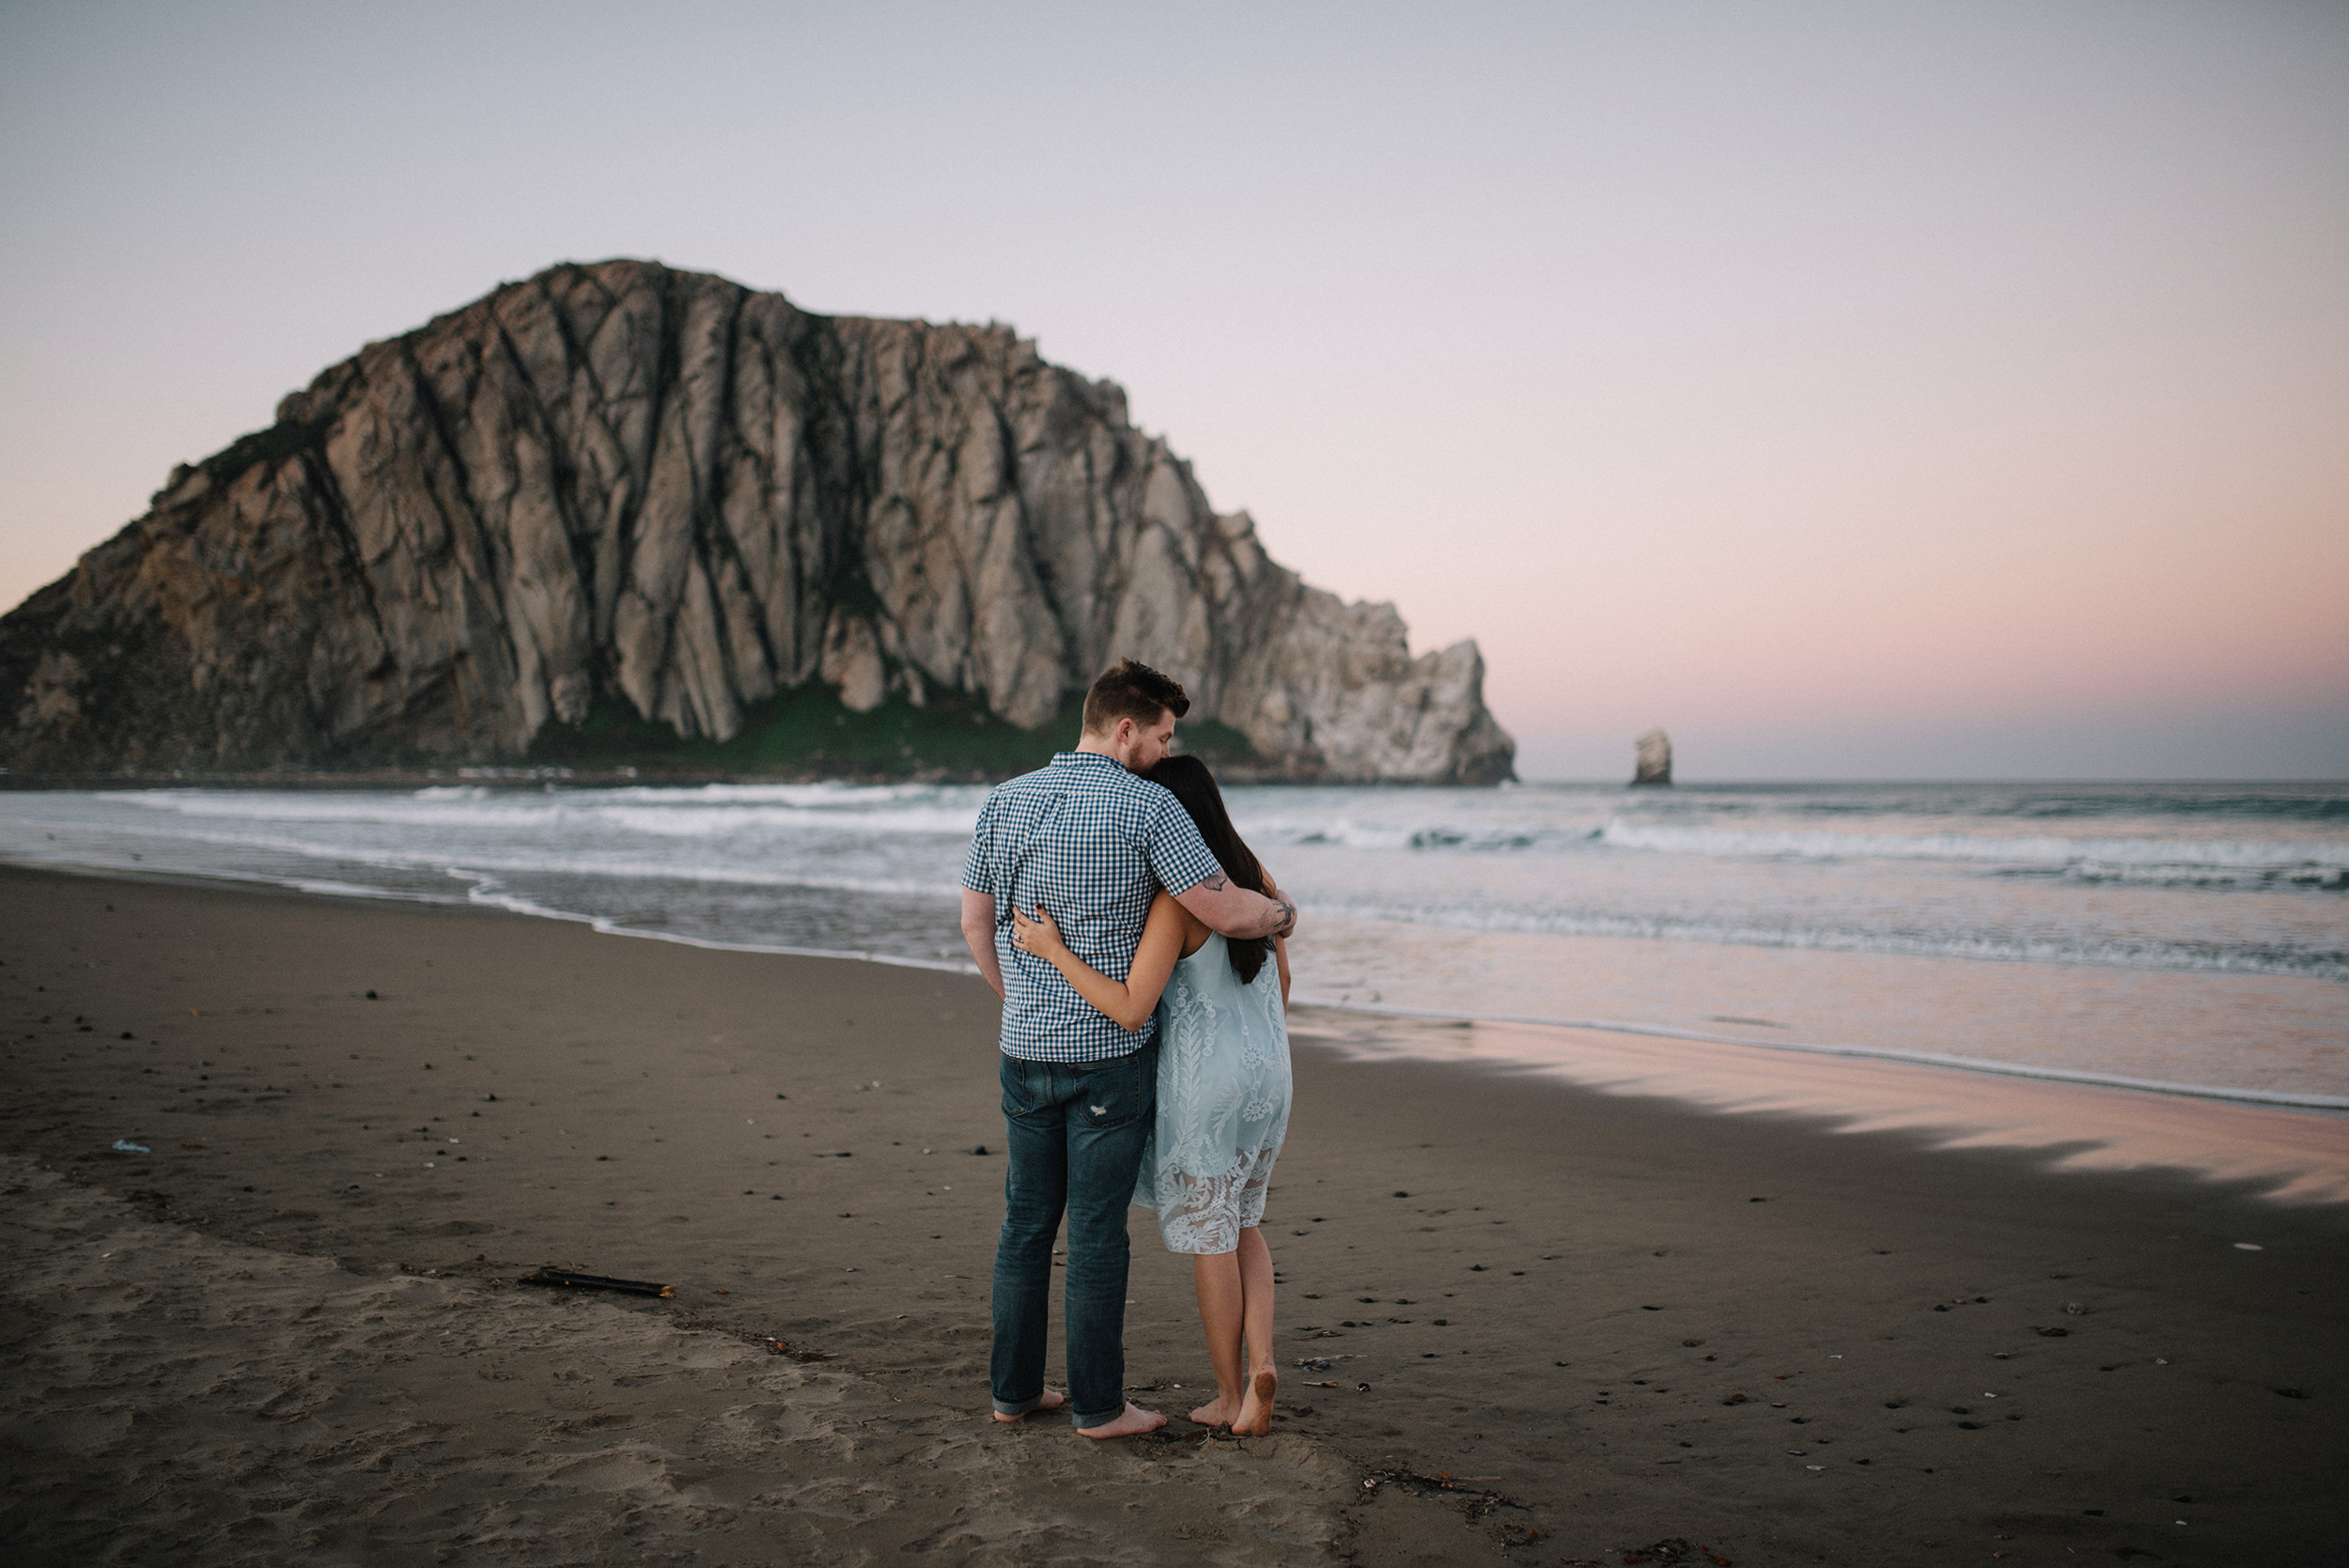 Colby-and-Jess-Adventure-Engagement-Photography-Morro-Bay-Montana-de-oro-California84.jpg